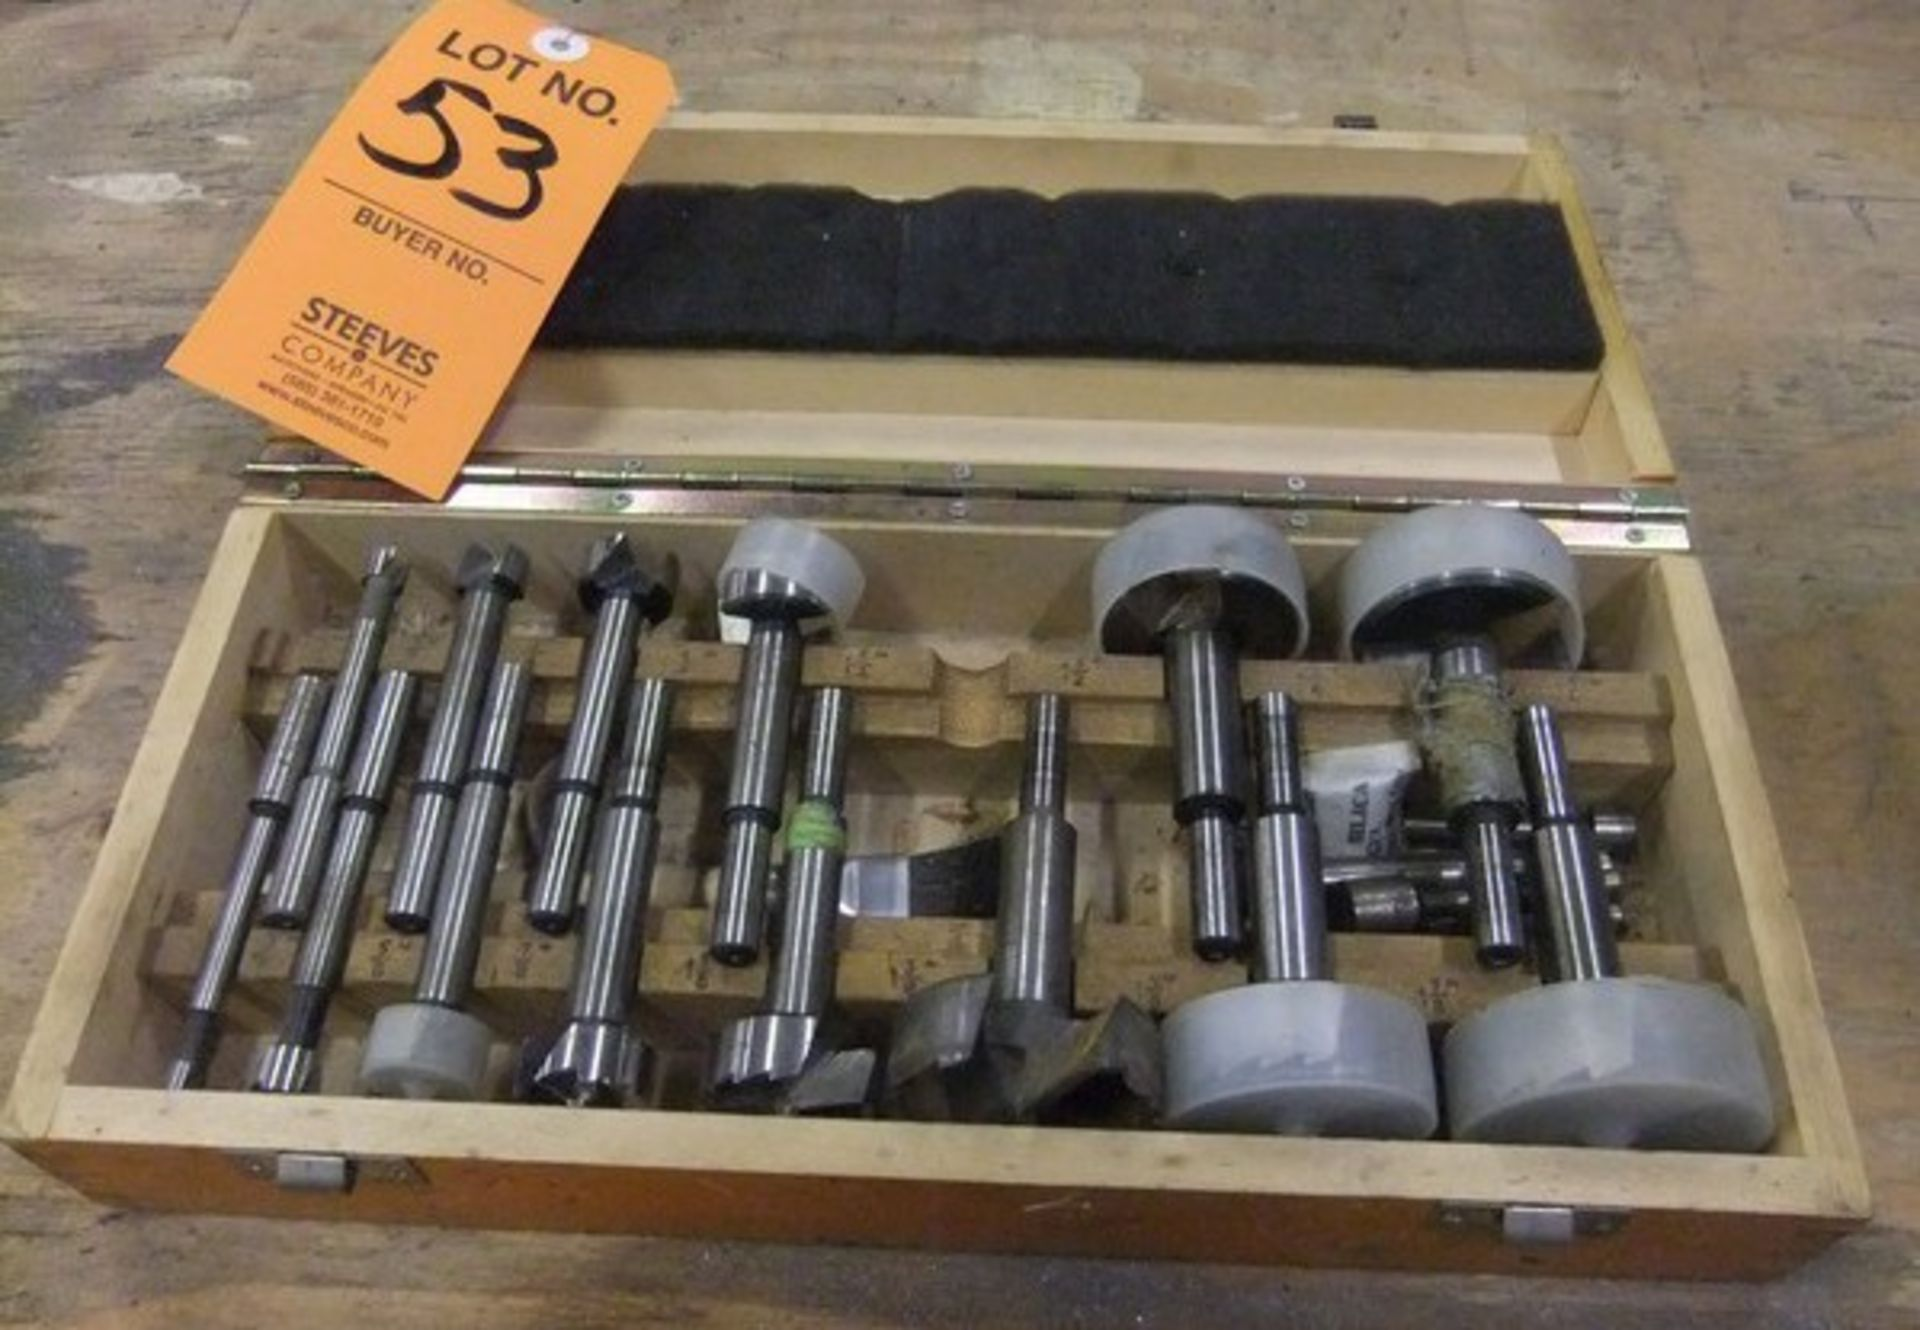 Lot 53 - LOT: (1) BOX - FORSTNER BITS